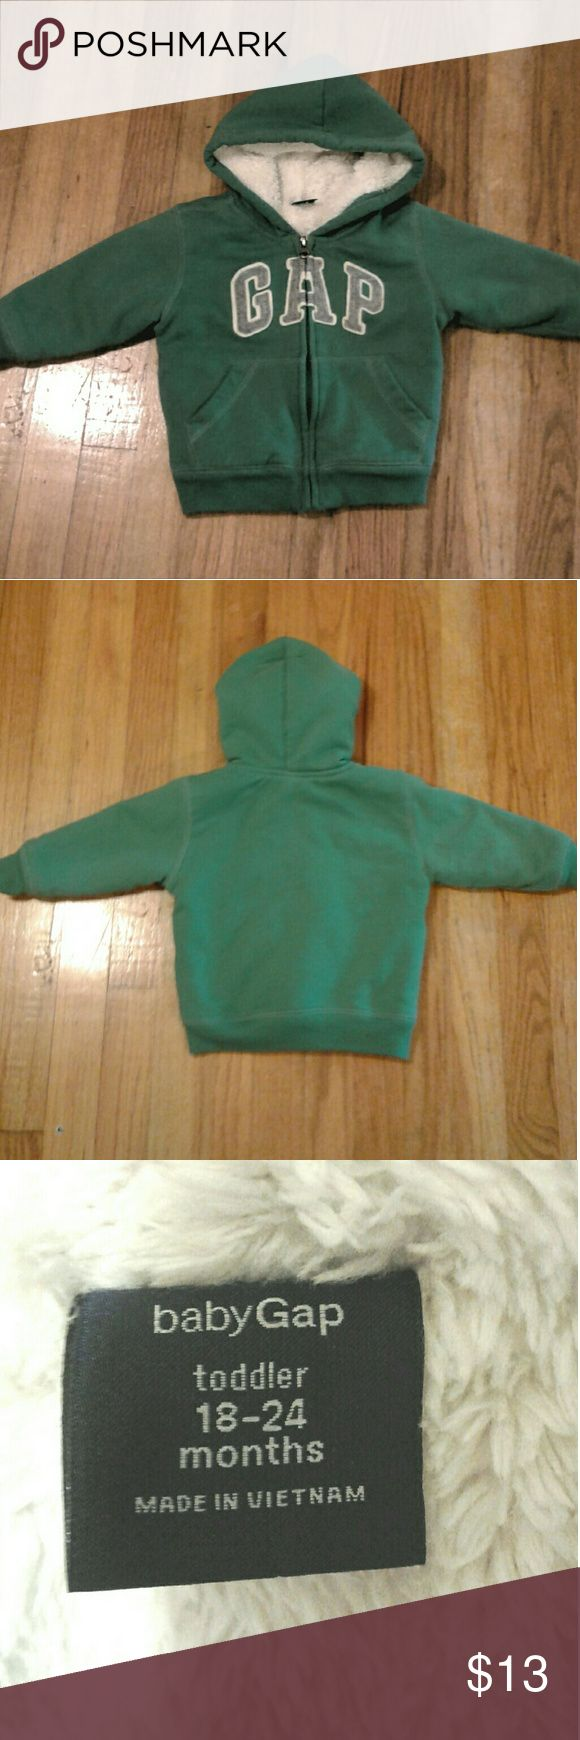 Nice Gap  jacket  like new!! Baby Gap full front zip up jacket with hood extremely soft and  warm fuzzy lining on   inside  (pic #4). Very nice  green color size  18-24months/ unisex  . Like New condition!!! GAP Jackets & Coats